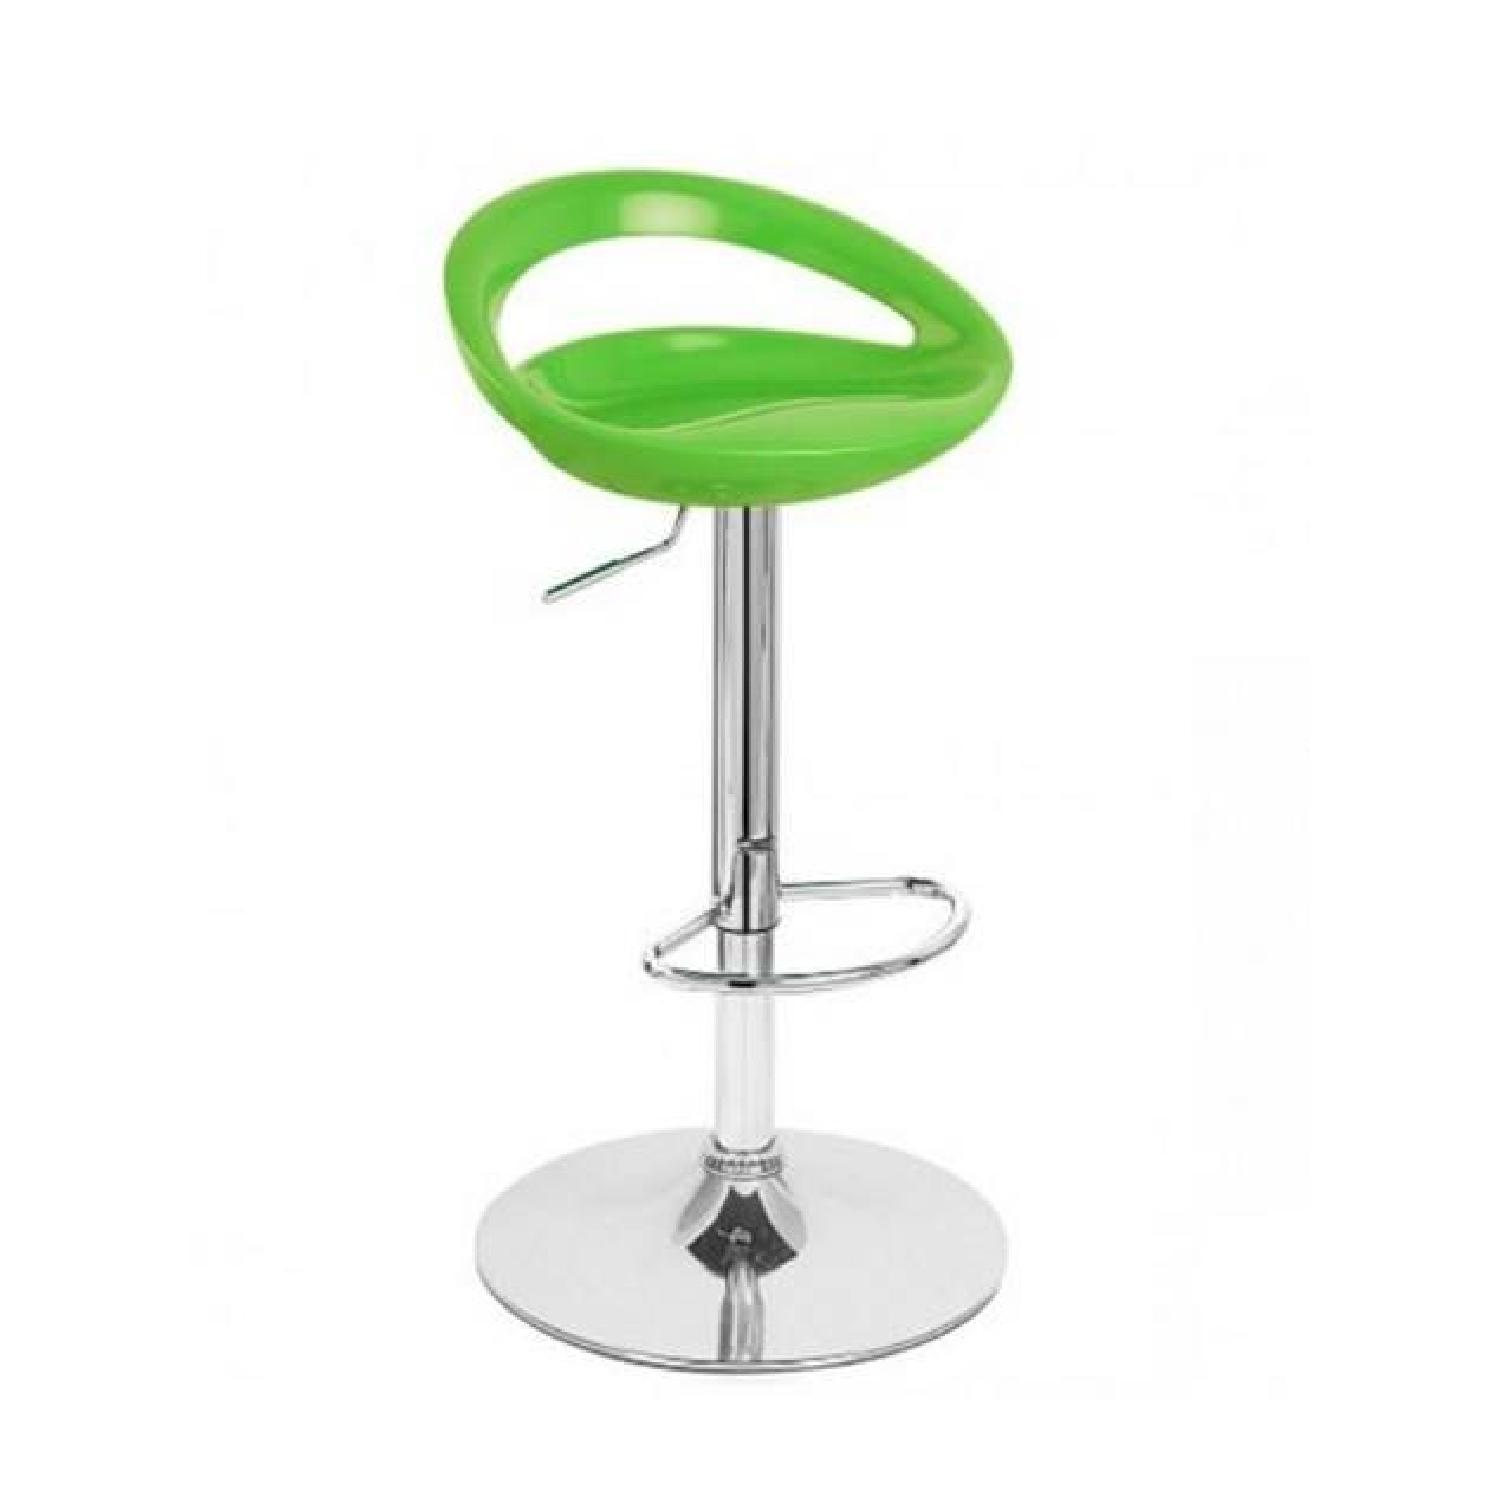 Adjustable Barstools in Lime Green - Pair - image-0